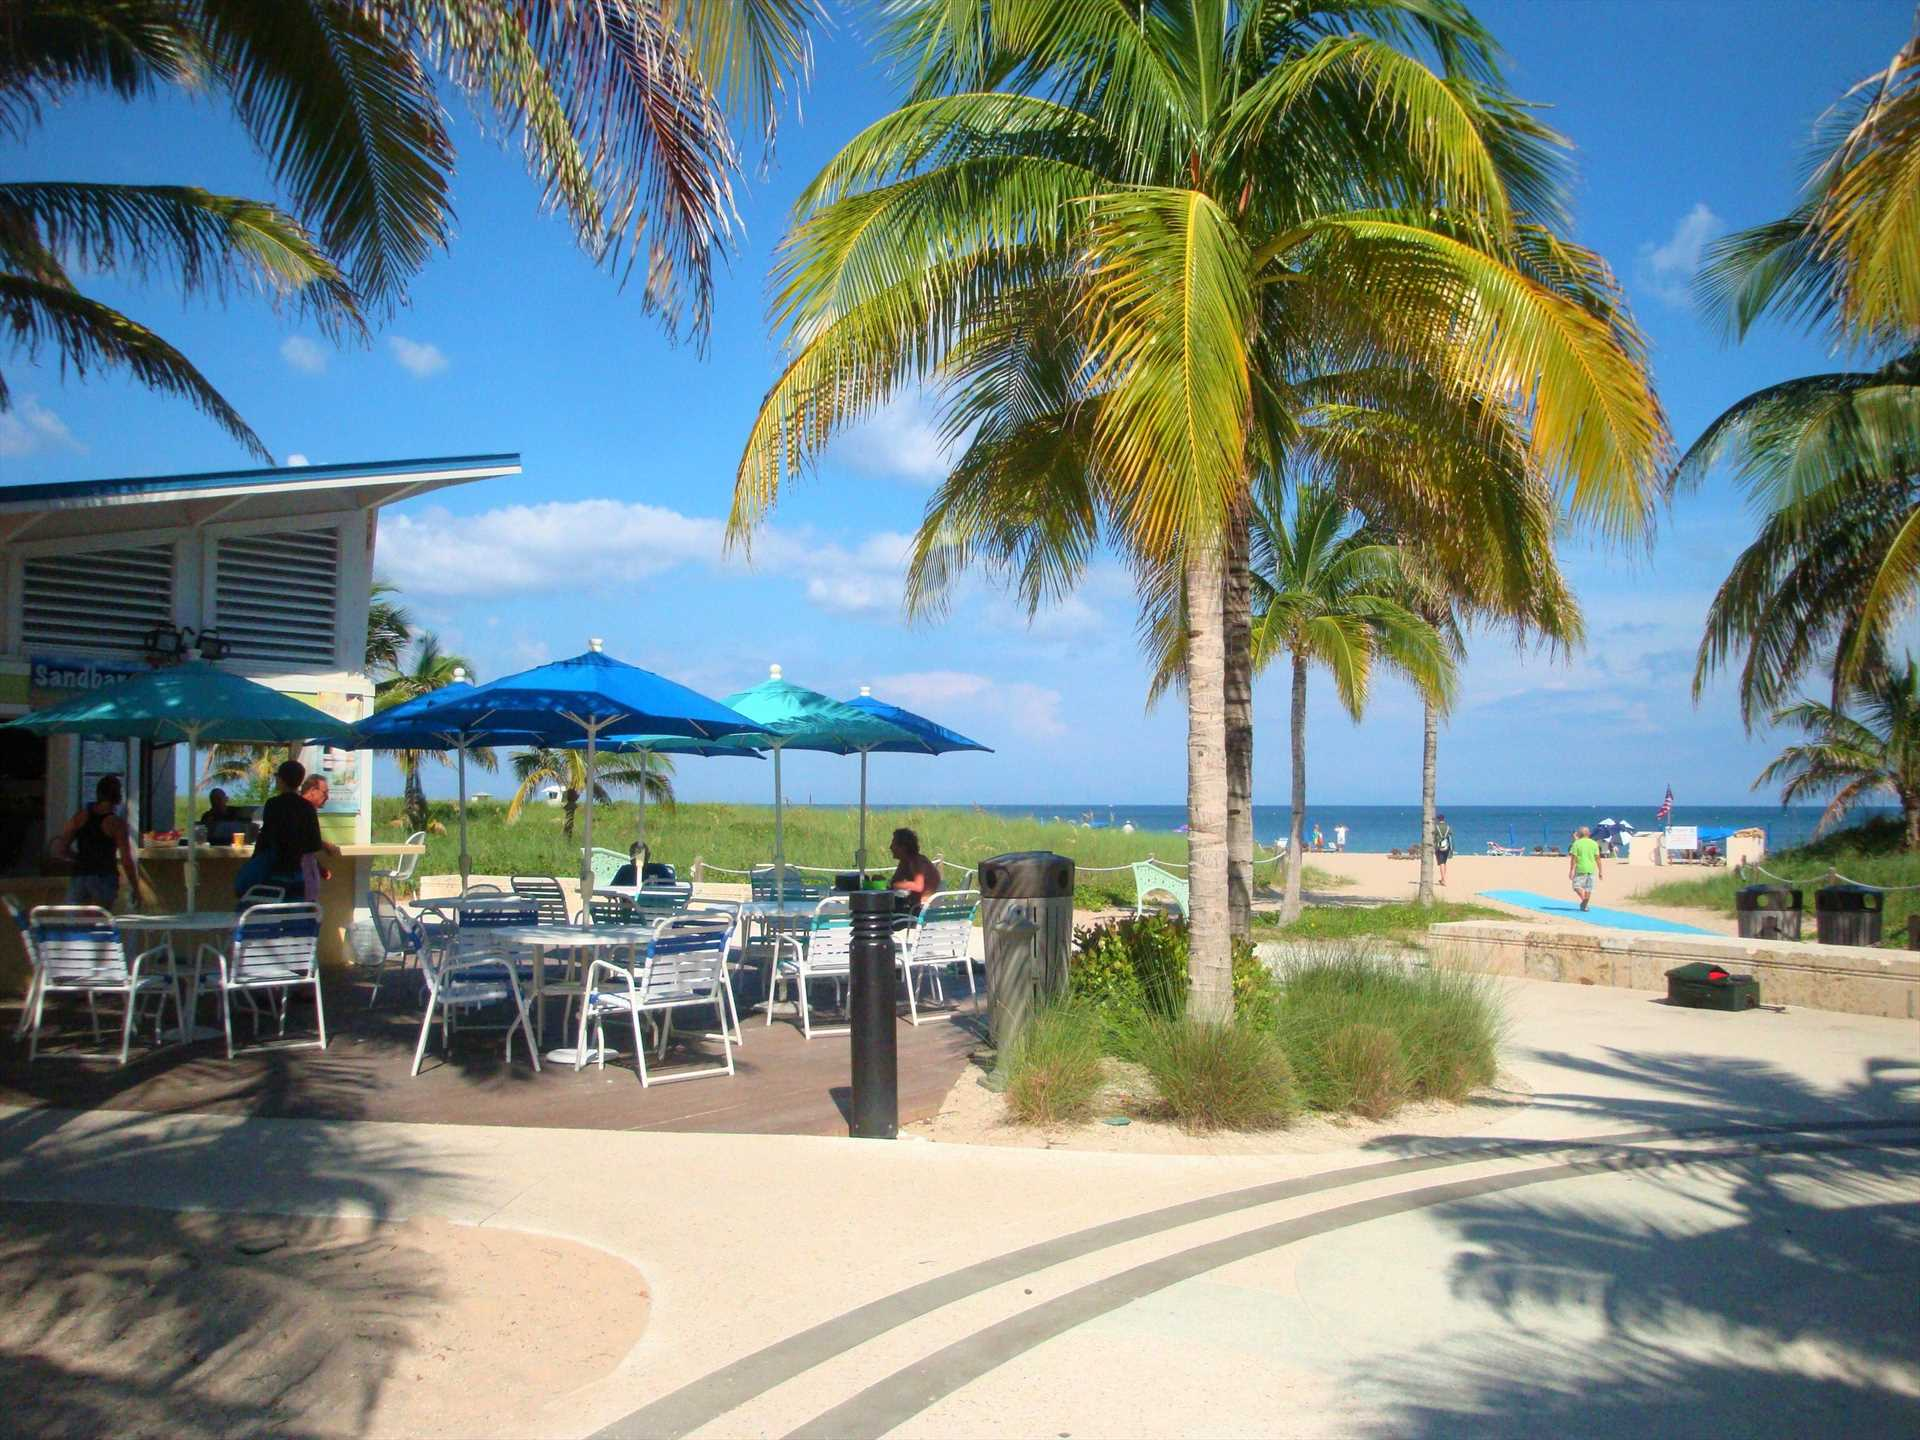 Family friendly Pompano Beach is just a 20 minute drive with